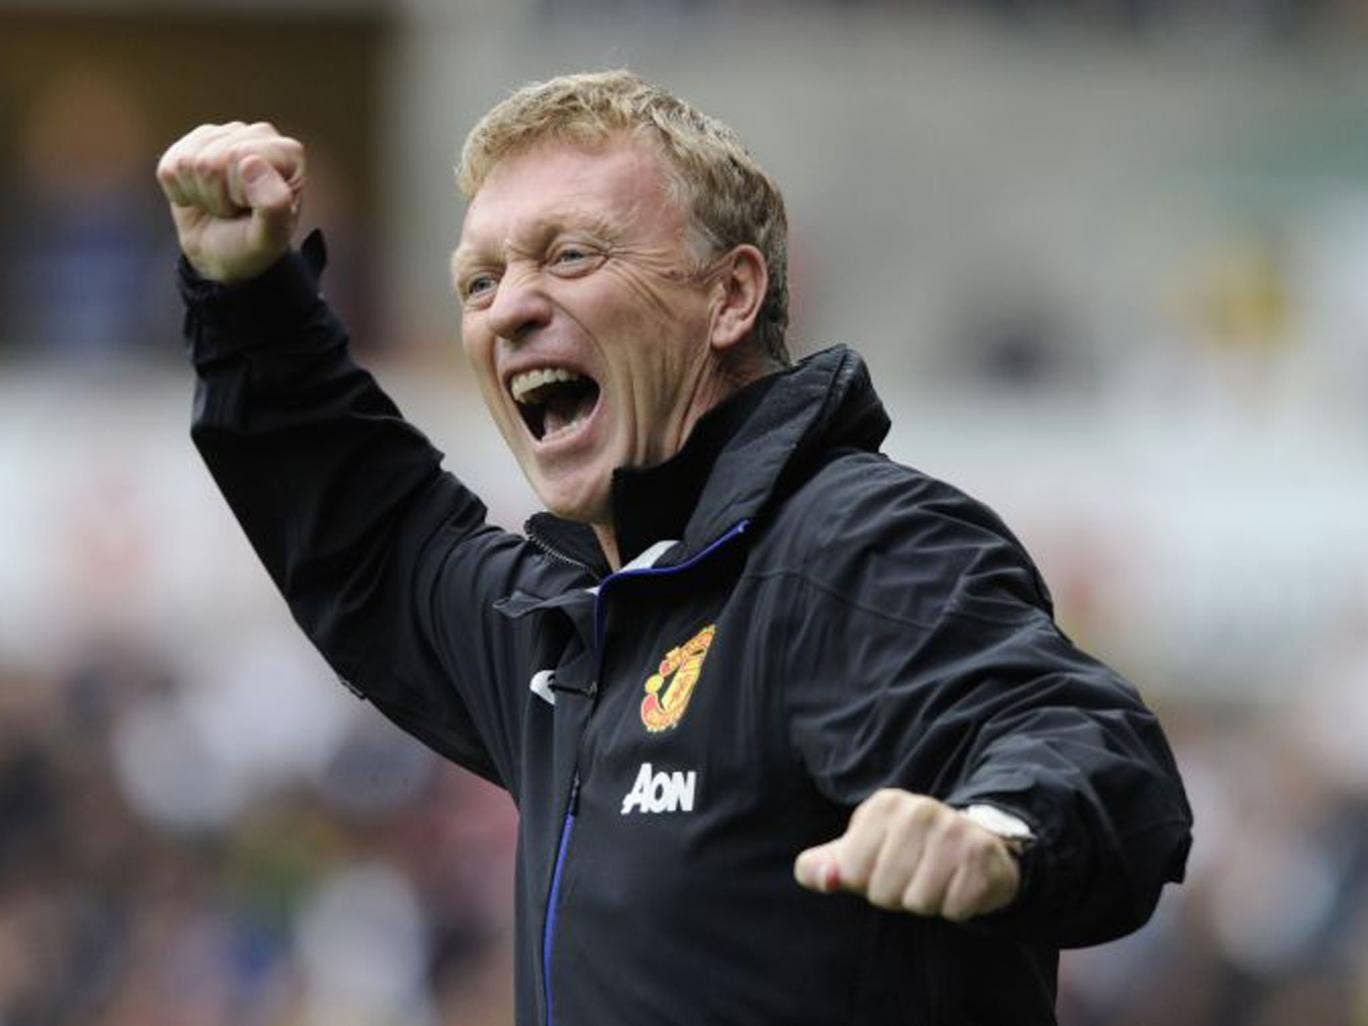 Moyes celebrates one of Manchester United goals during his first league game in charge of the club (Rebecca Naden/Reuters)